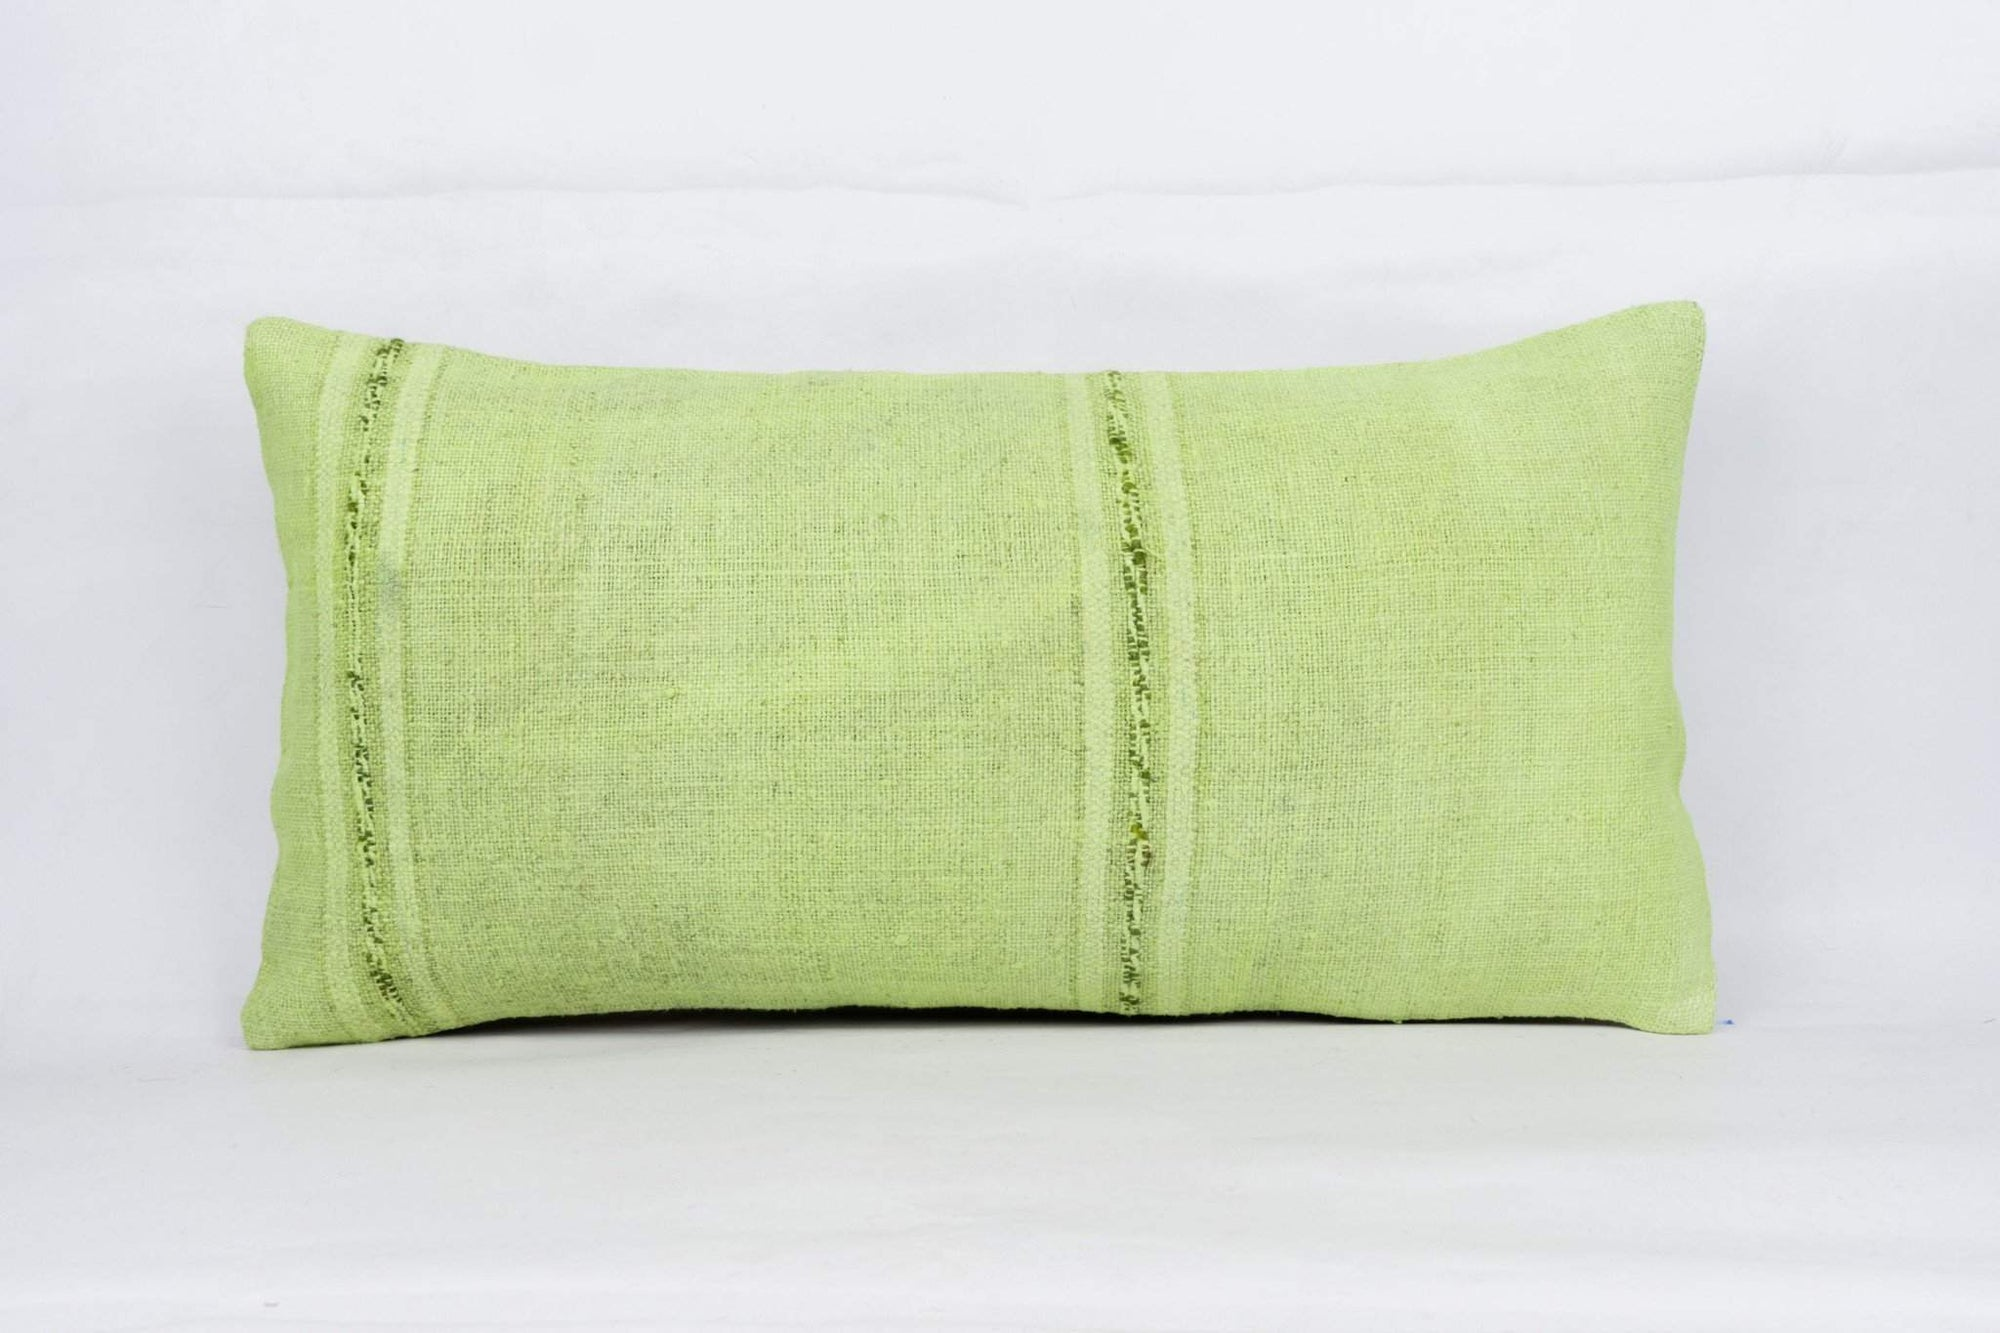 Plain Green Kilim Pillow Cover 12x24 4123 - kilimpillowstore  - 1